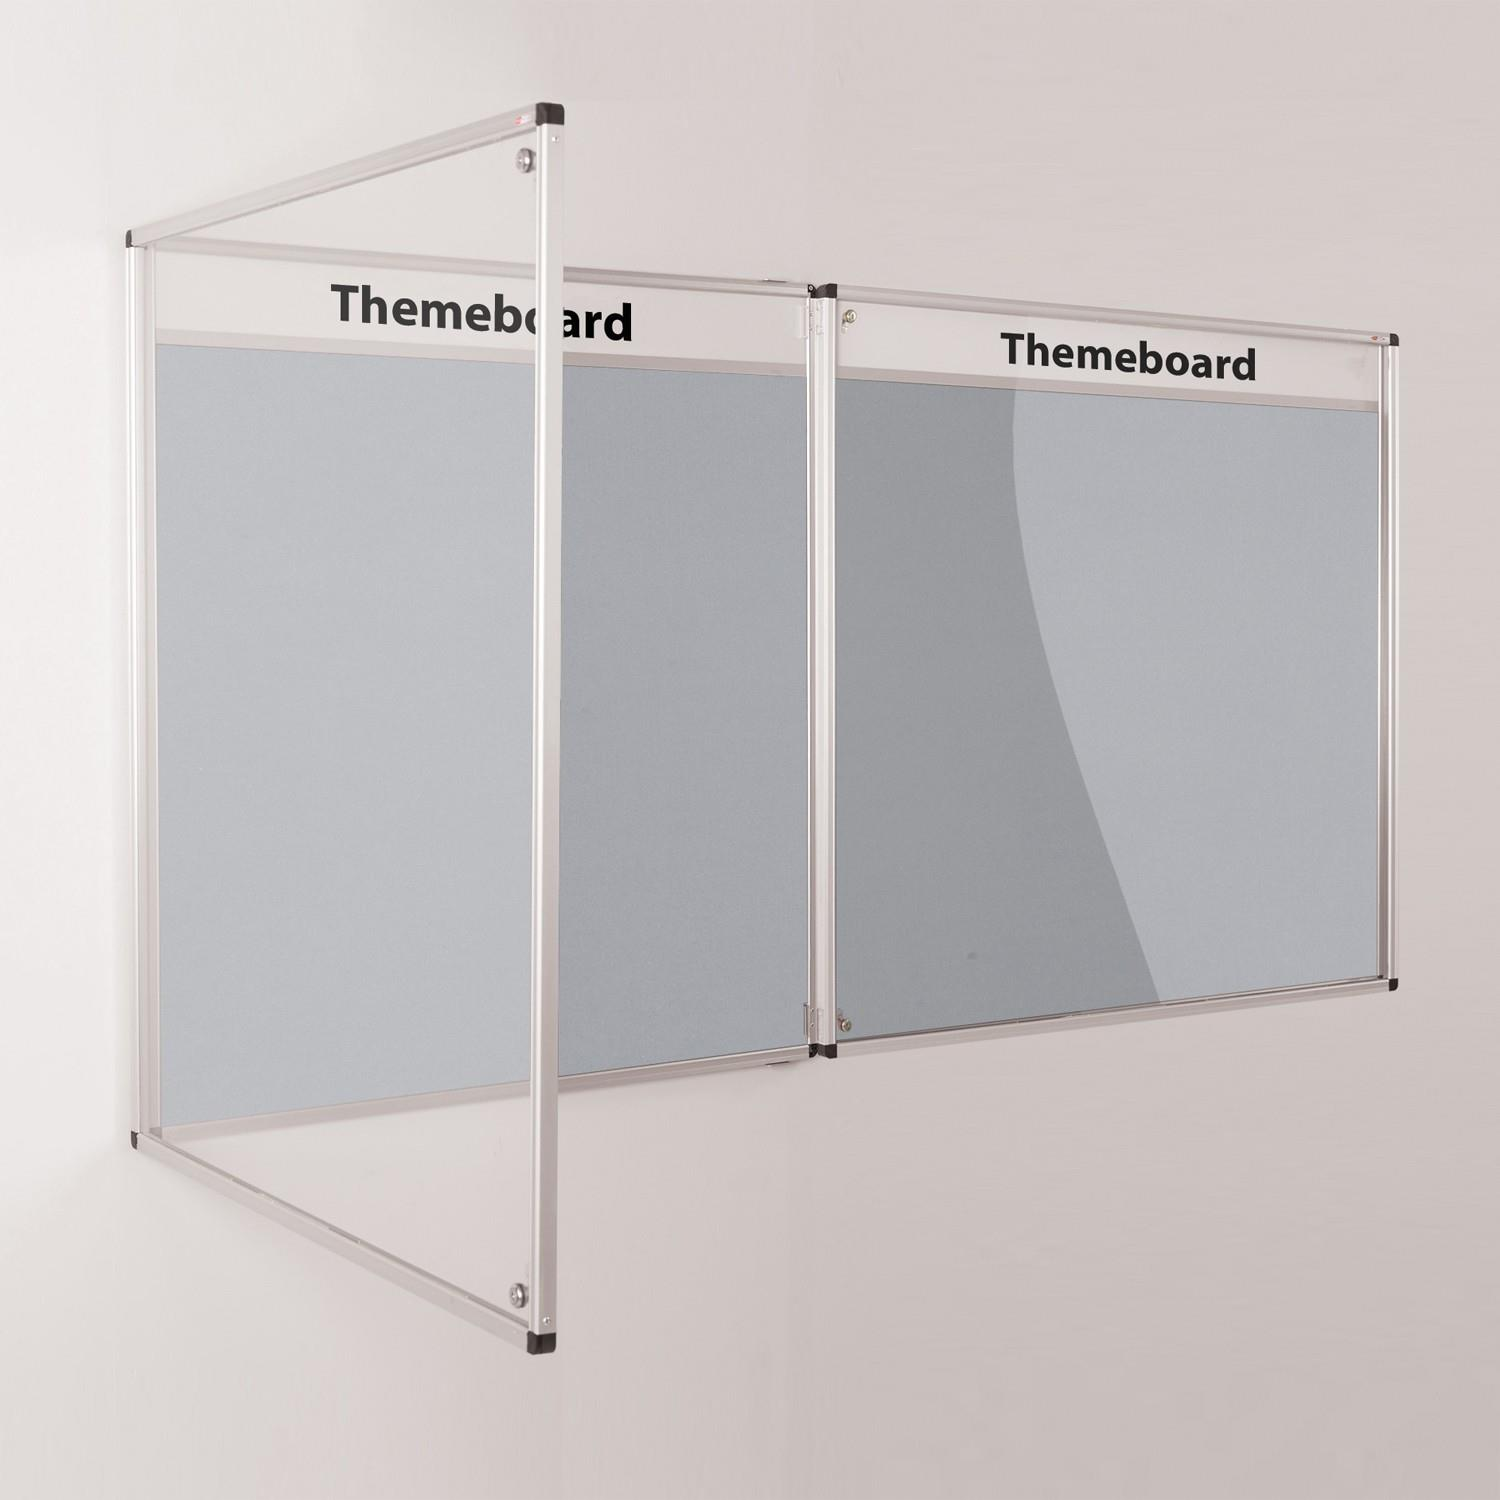 ThemeBoard Tamperproof Noticeboards